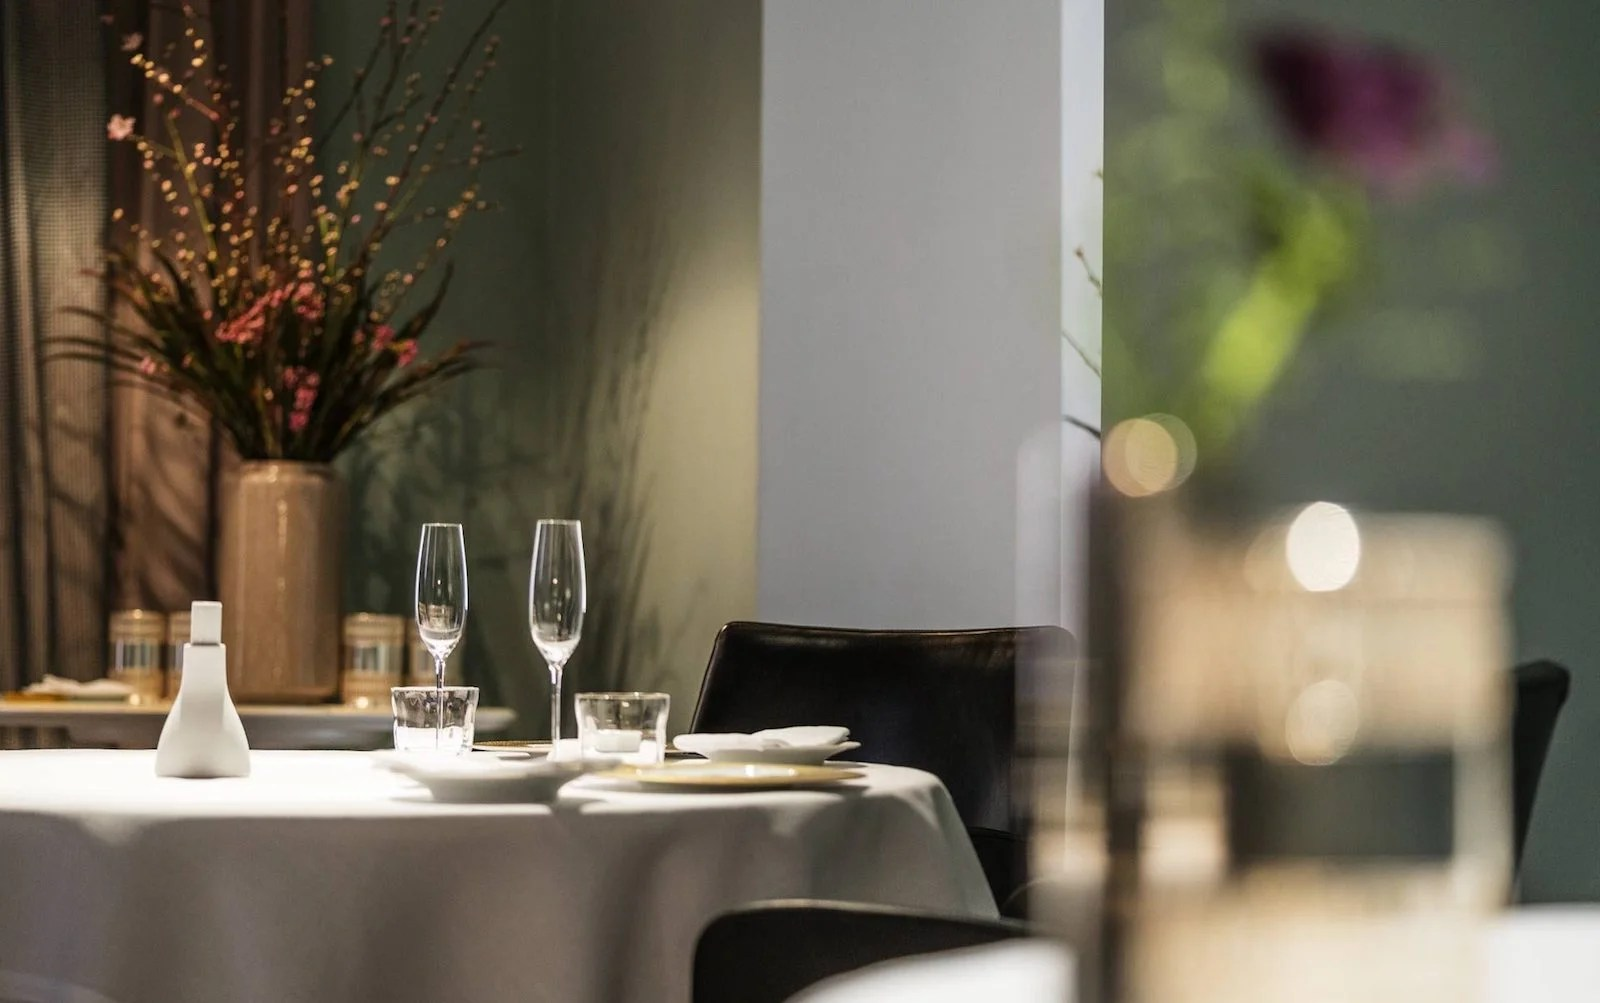 8 Tips for Scoring Reservations at the World's Most Popular Restaurants